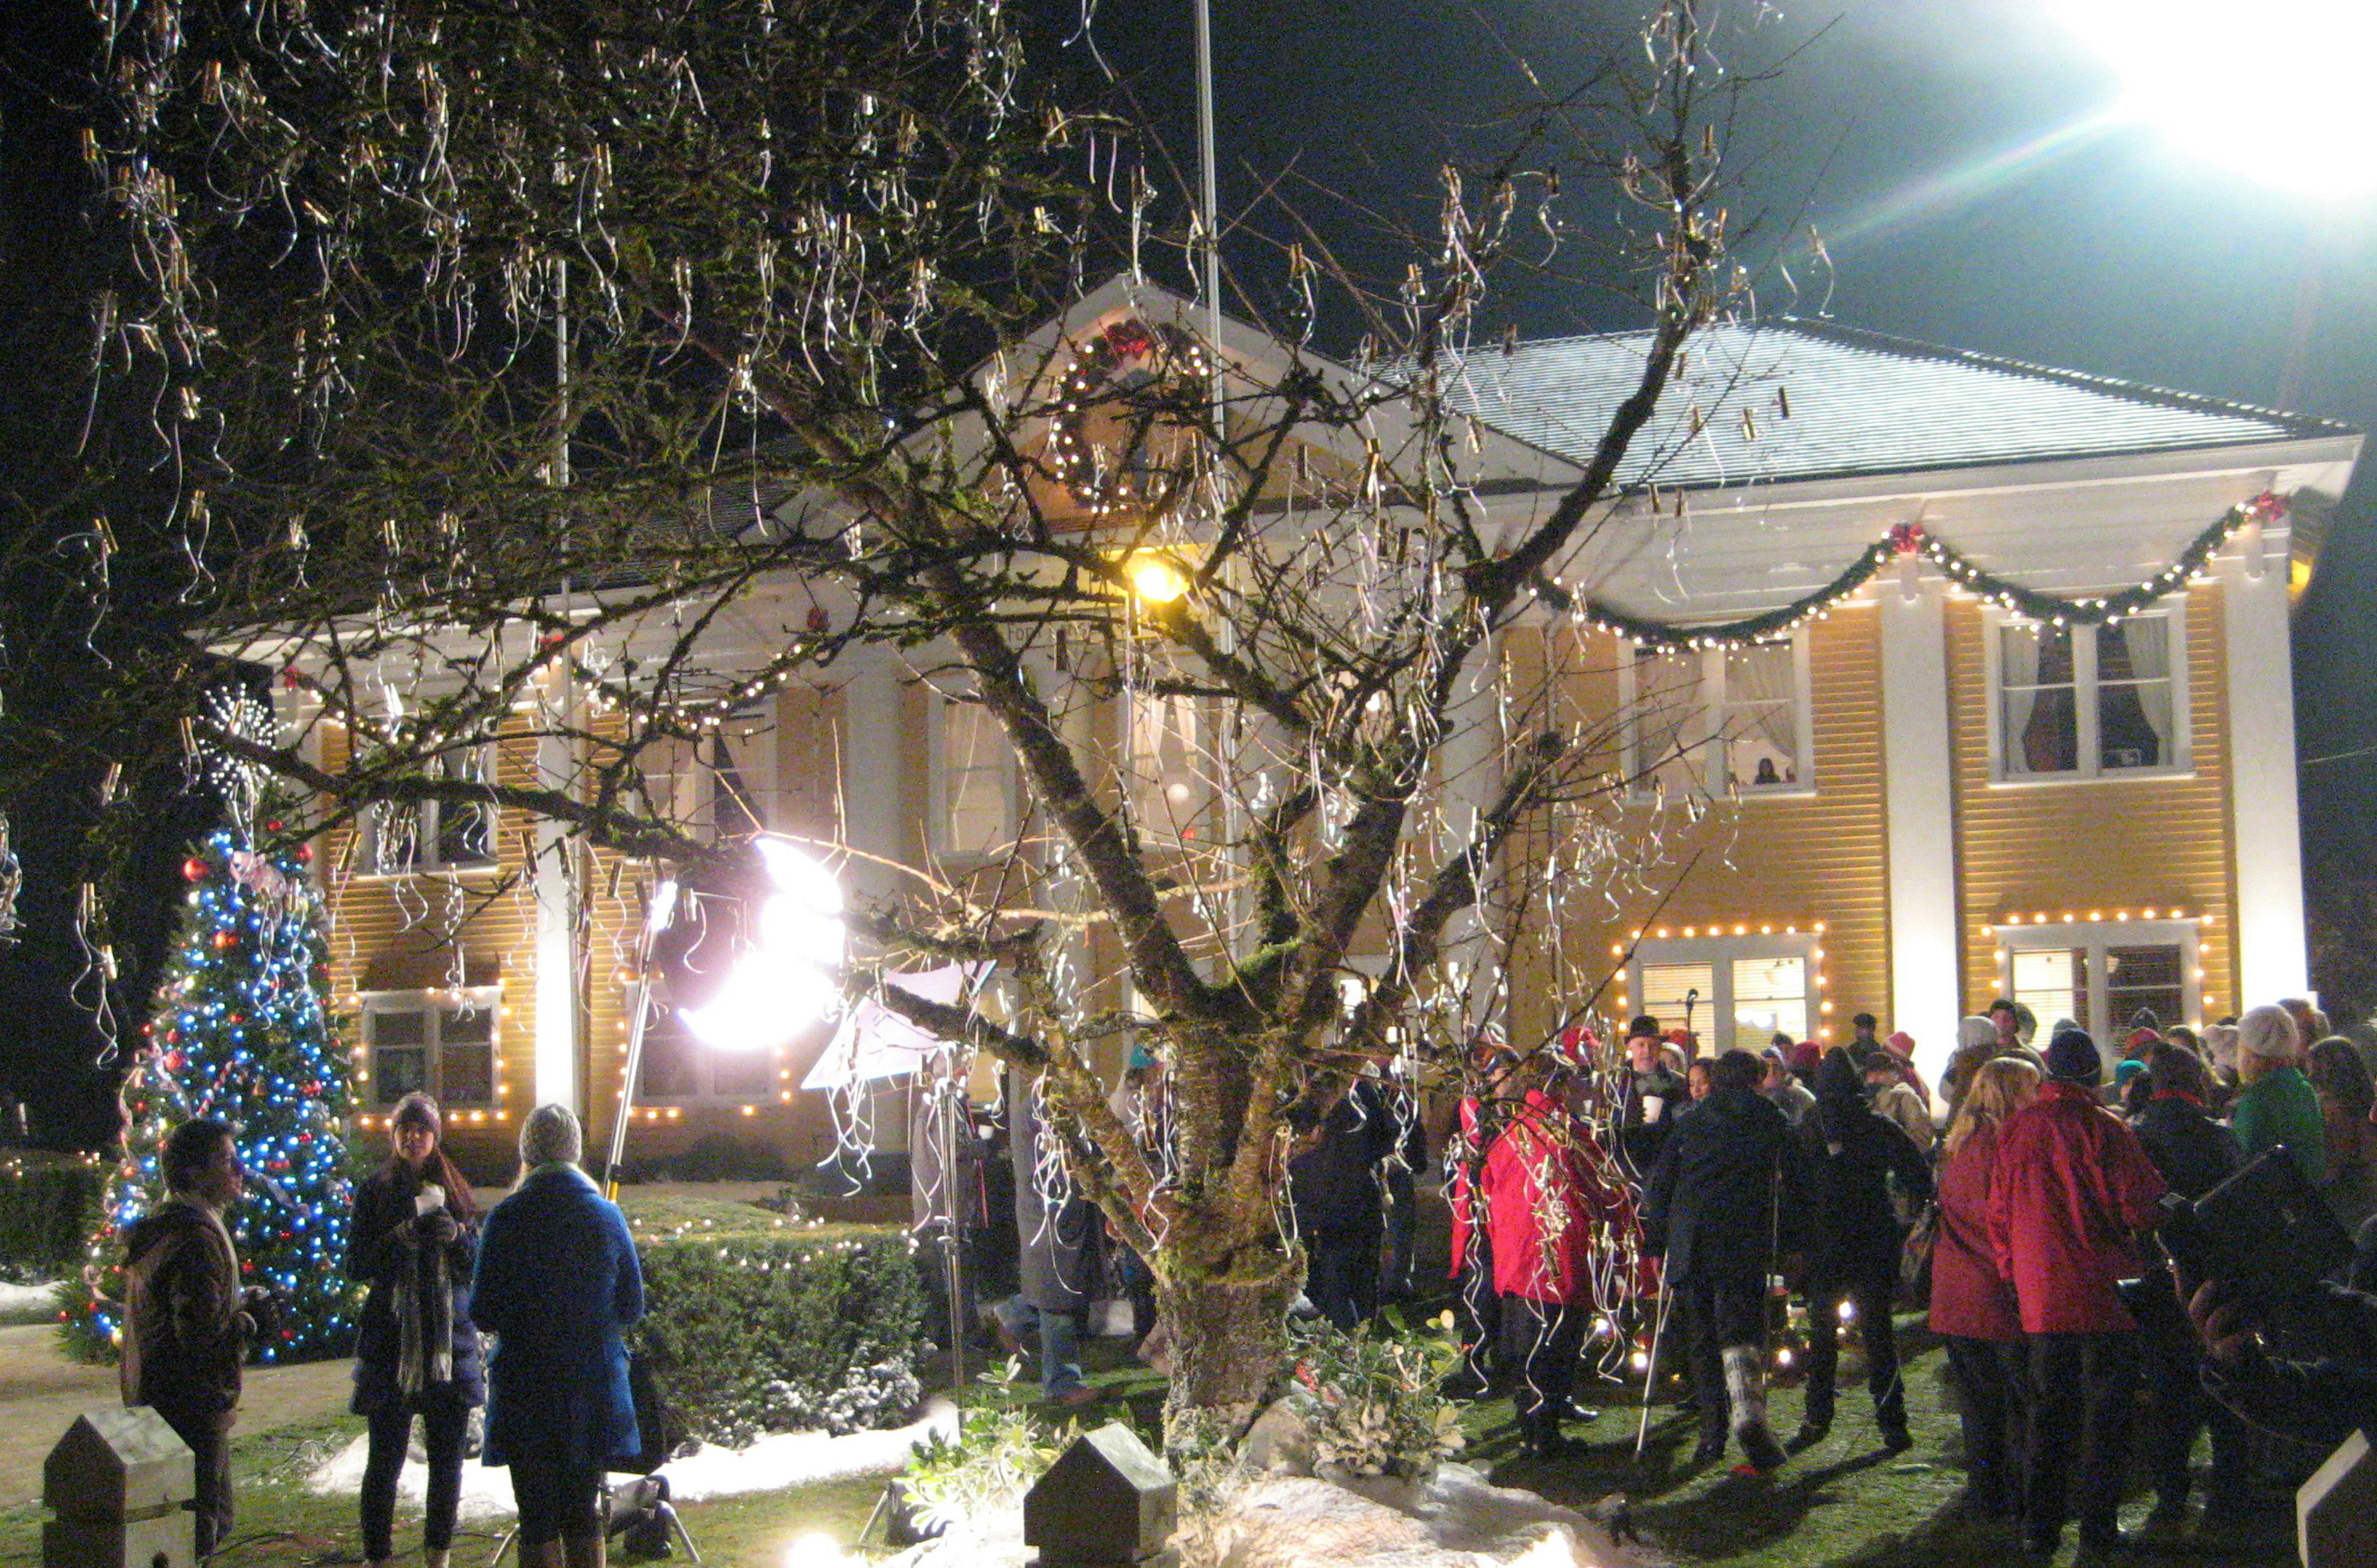 FORT CHRISTMAS: The Wishing Tree in Fort Langley ...